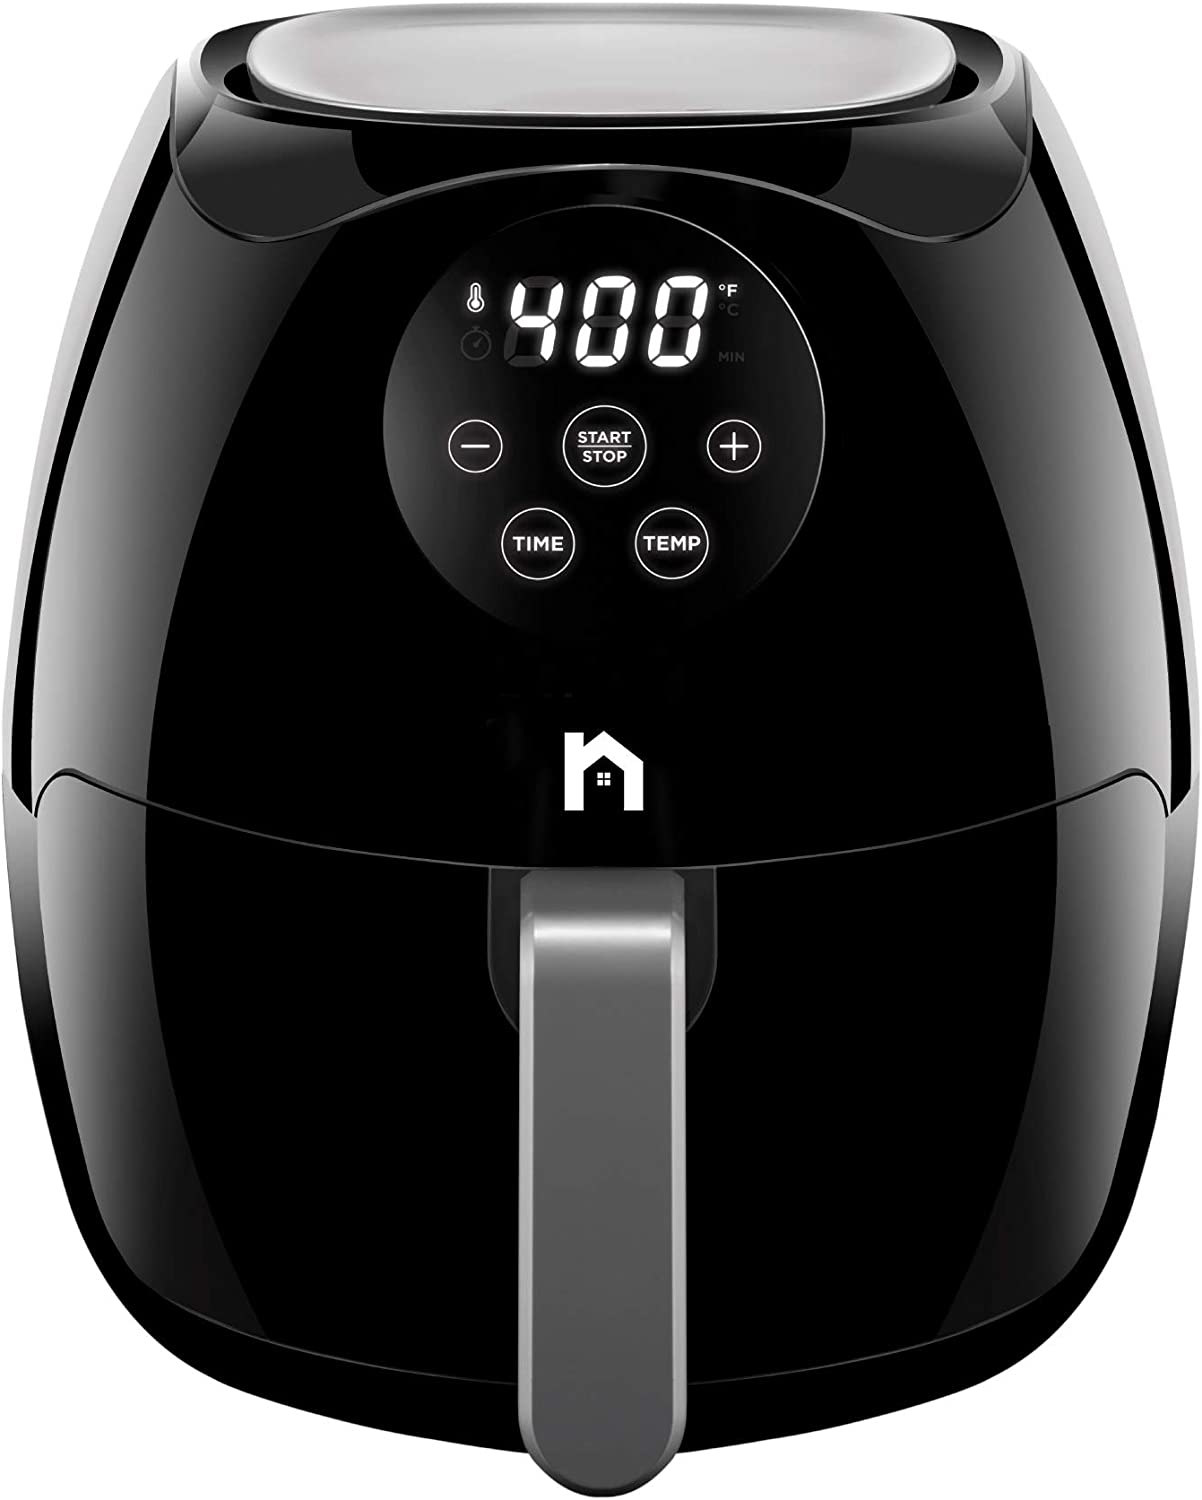 New House Kitchen Digital 3.6 Quart Air Fryer w/ Flat Basket, Touch Screen AirFryer, Non-Stick Dishwasher-Safe Basket, Use Less Oil For Fast Healthier Food, 60 Min Timer & Auto Shut Off, Black